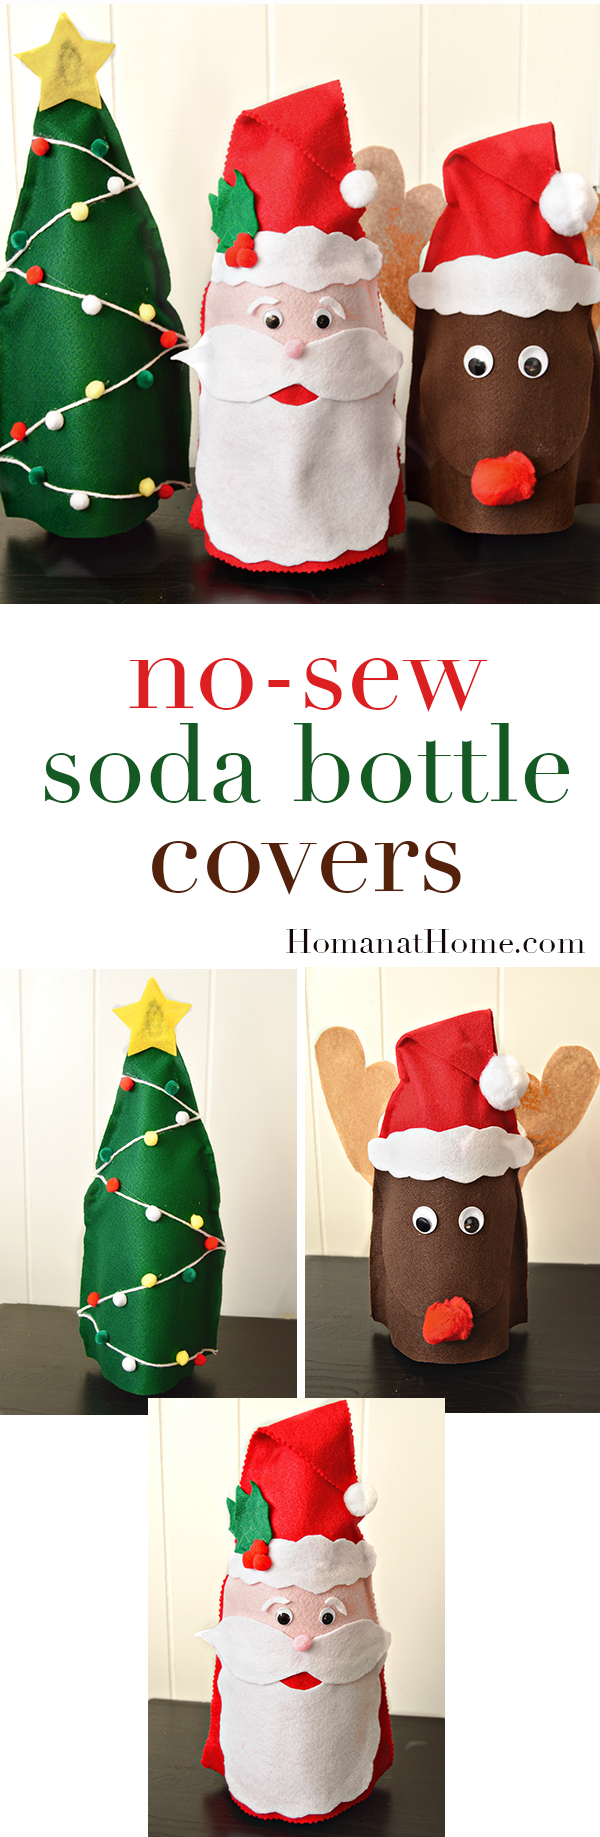 No Sew Christmas Soda Bottle Covers | Homan at Home